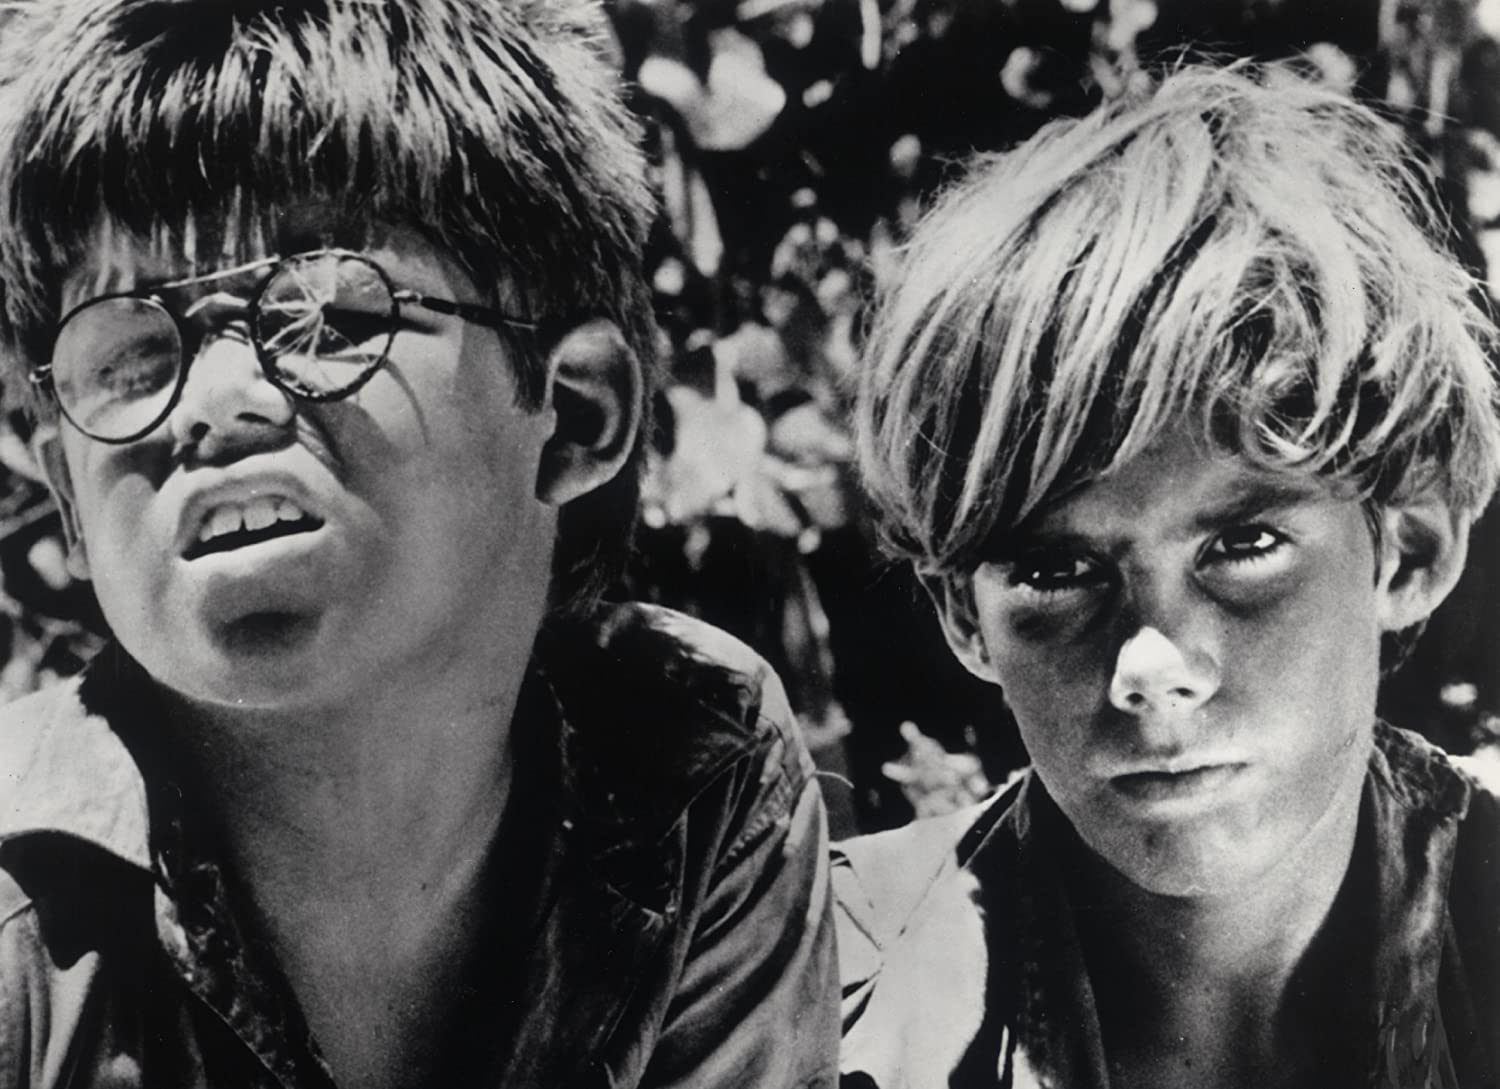 com lord of the flies criterion collection james aubrey com lord of the flies criterion collection james aubrey tom chapin hugh edwards roger elwin tom gamany peter brook movies tv